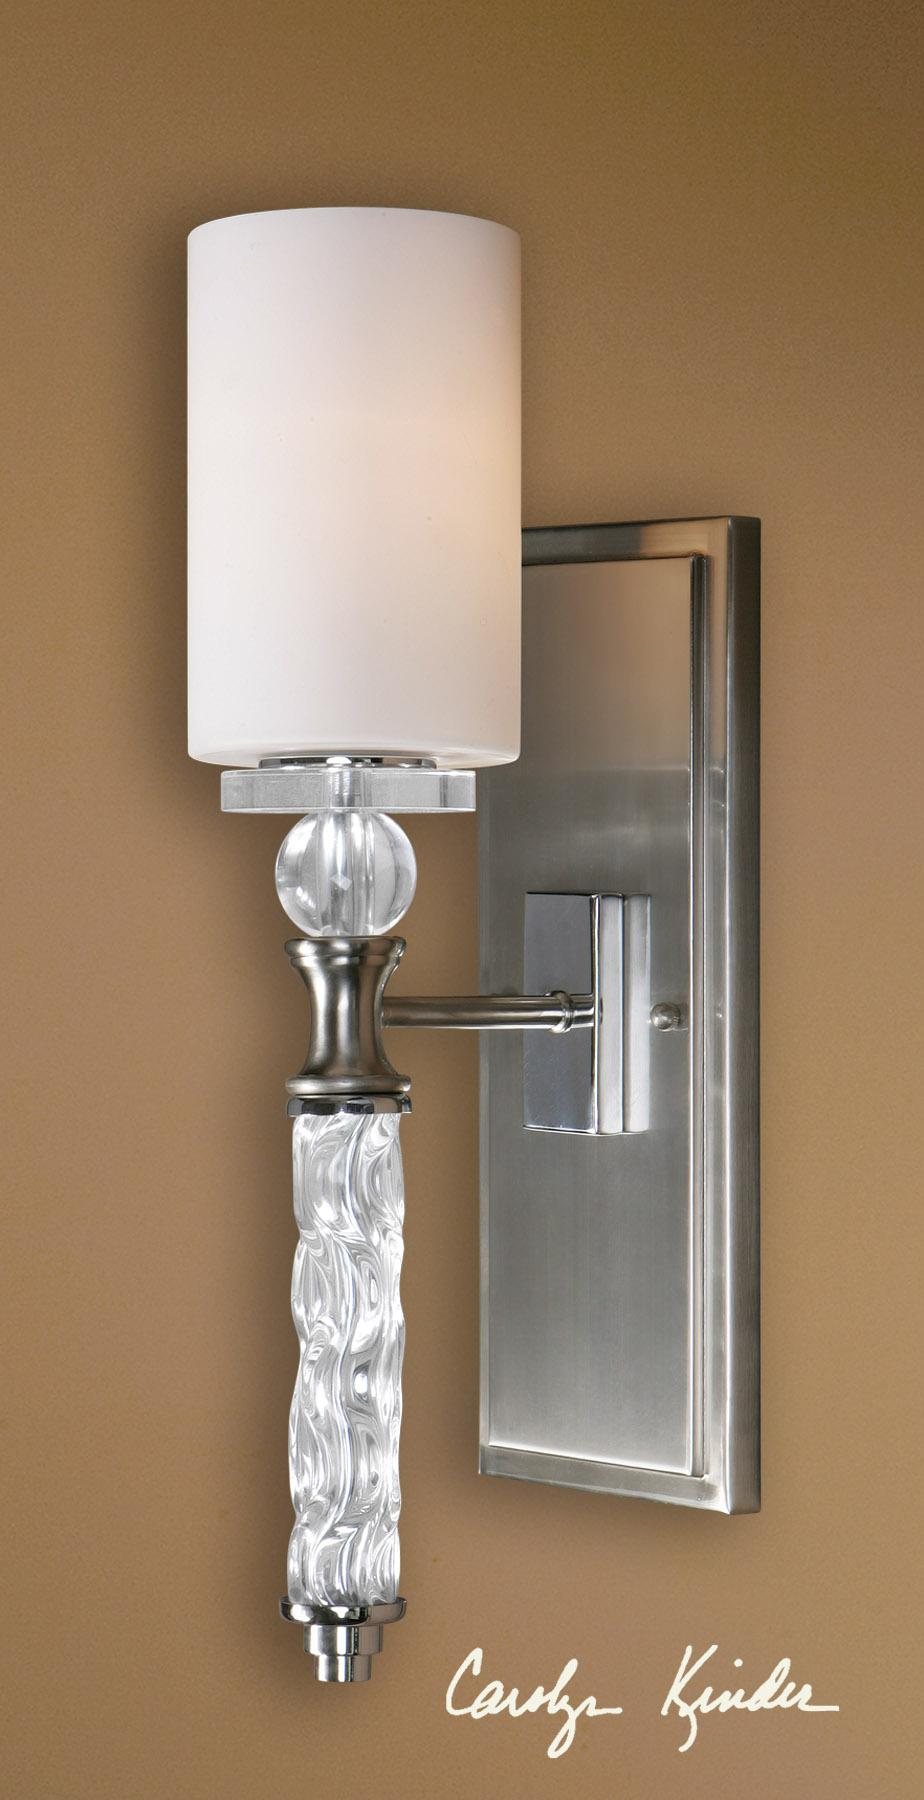 Uttermost Lighting Fixtures Campania 1 Light Wall Sconce - Item Number: 22486